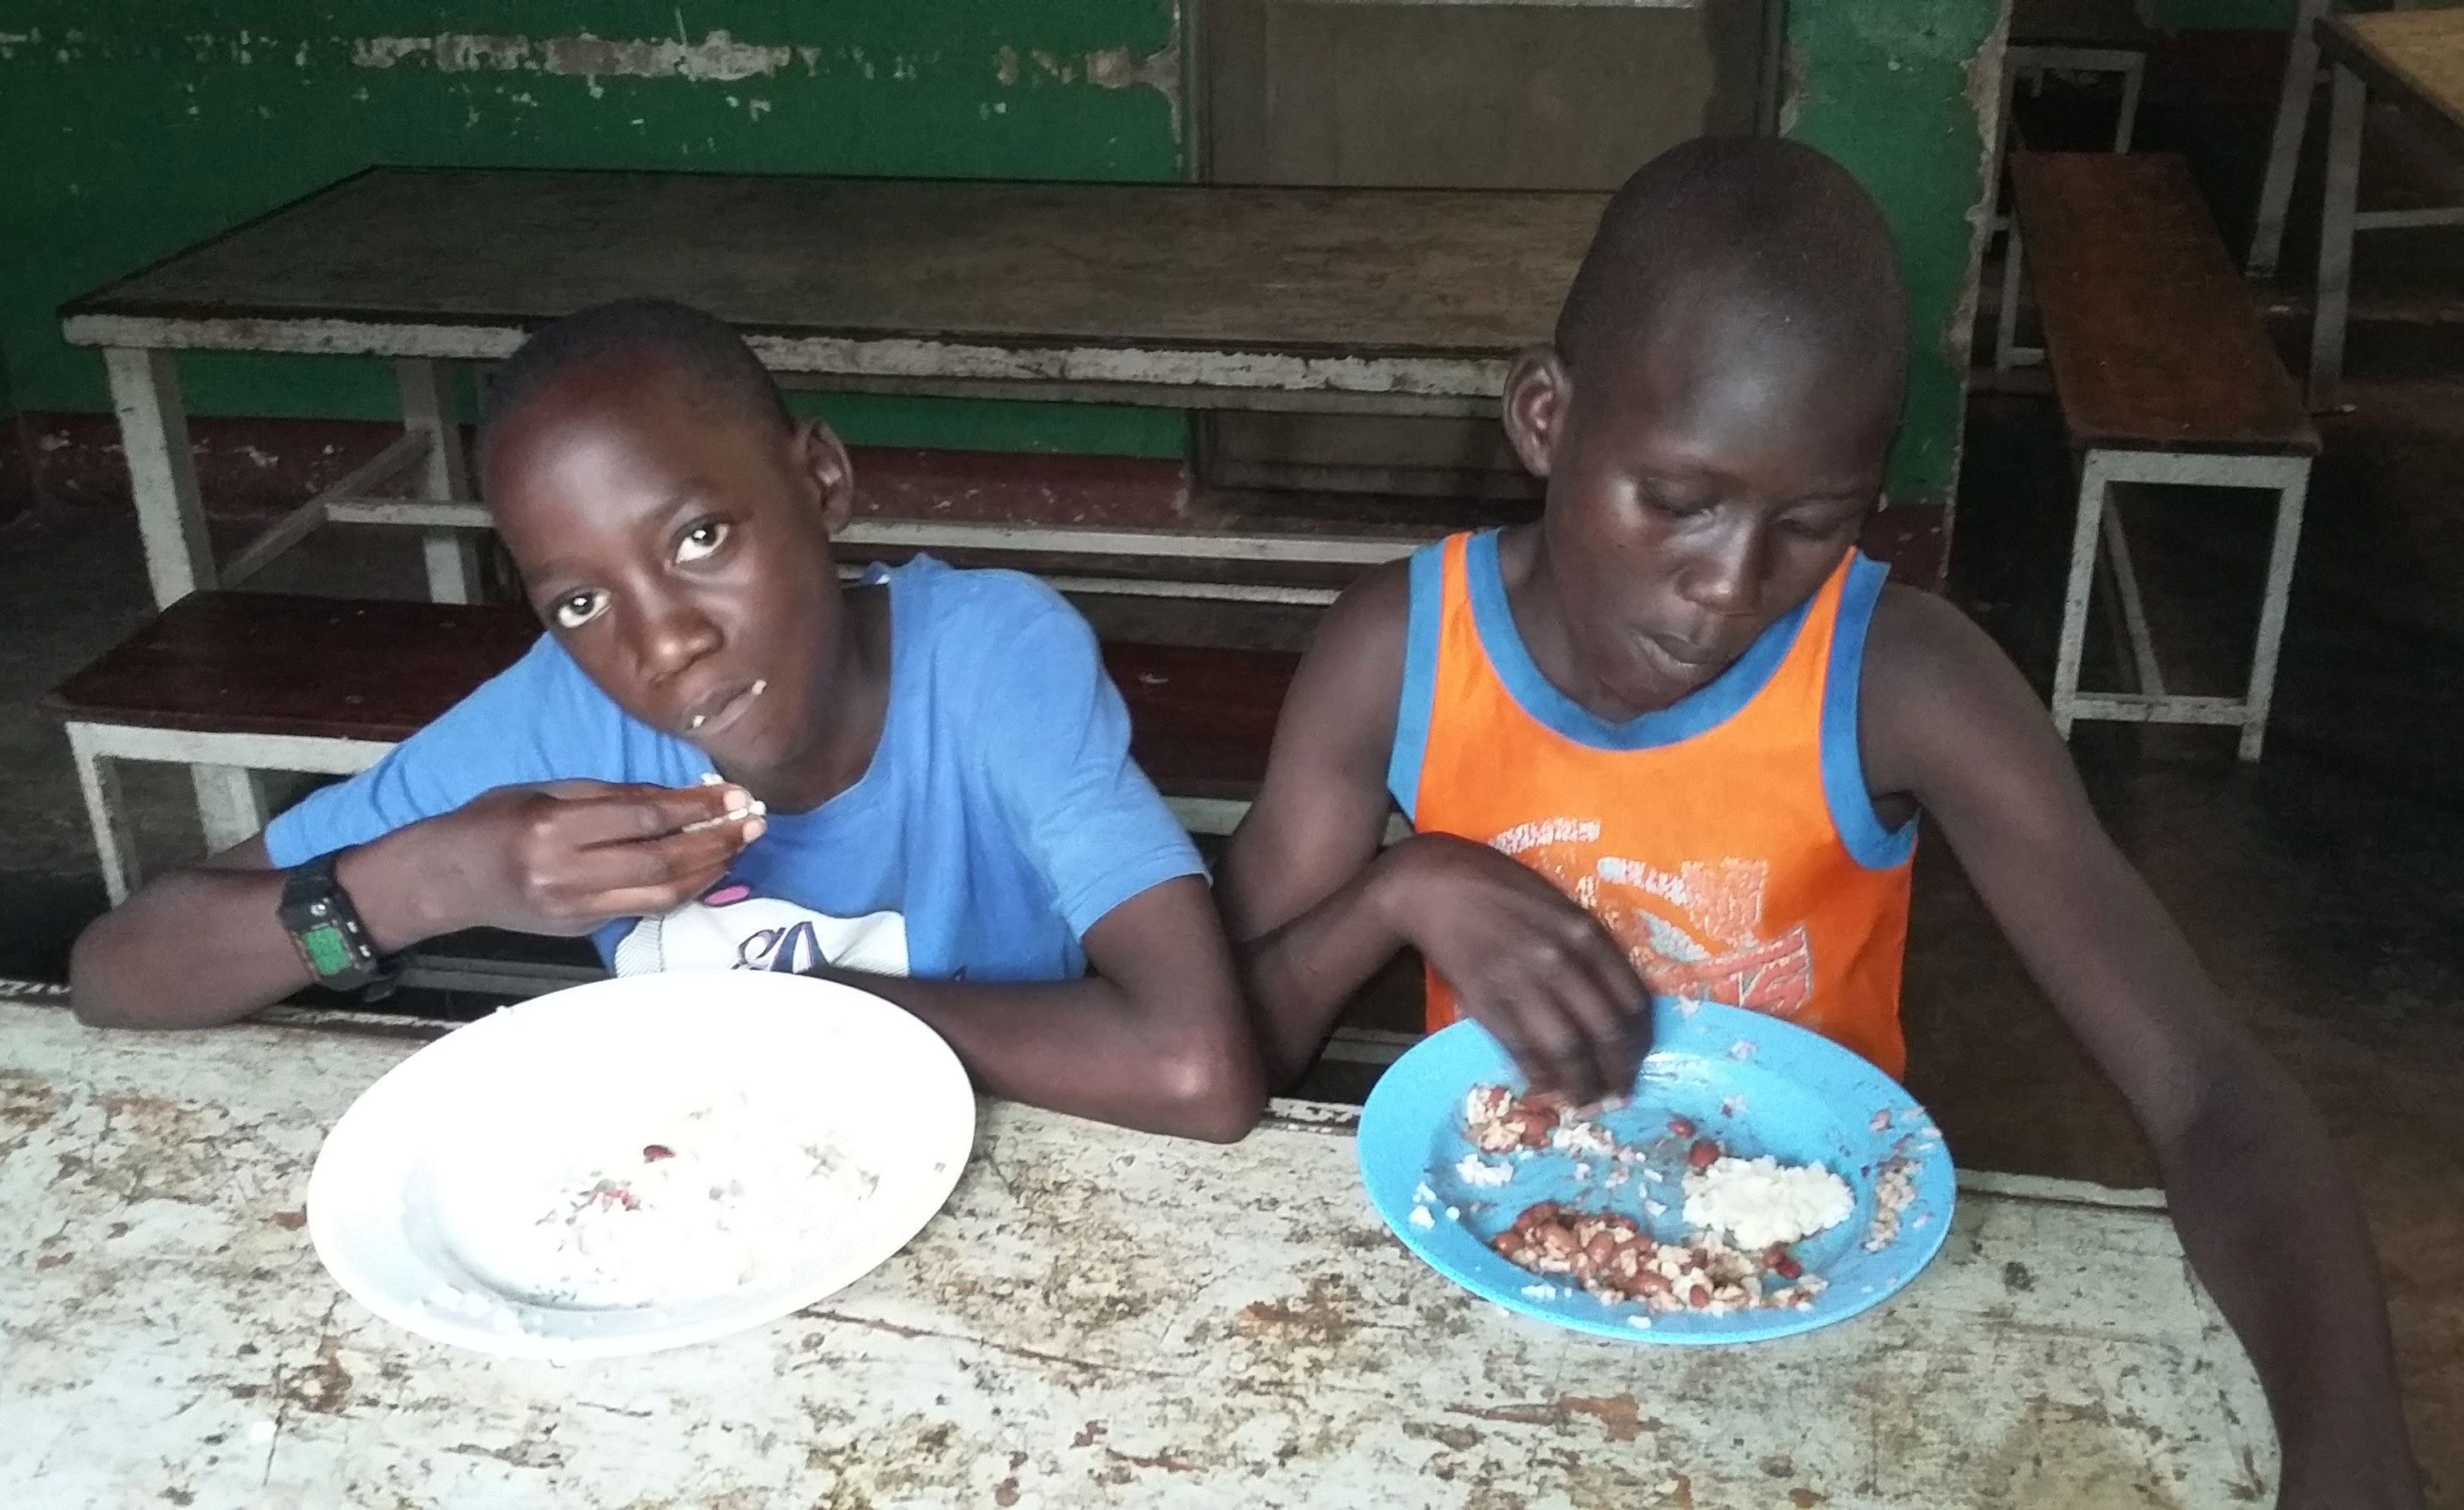 UGANDA: Close to 1,500 Students Receive Better Nutrition Thanks to Rice-Meal Donation